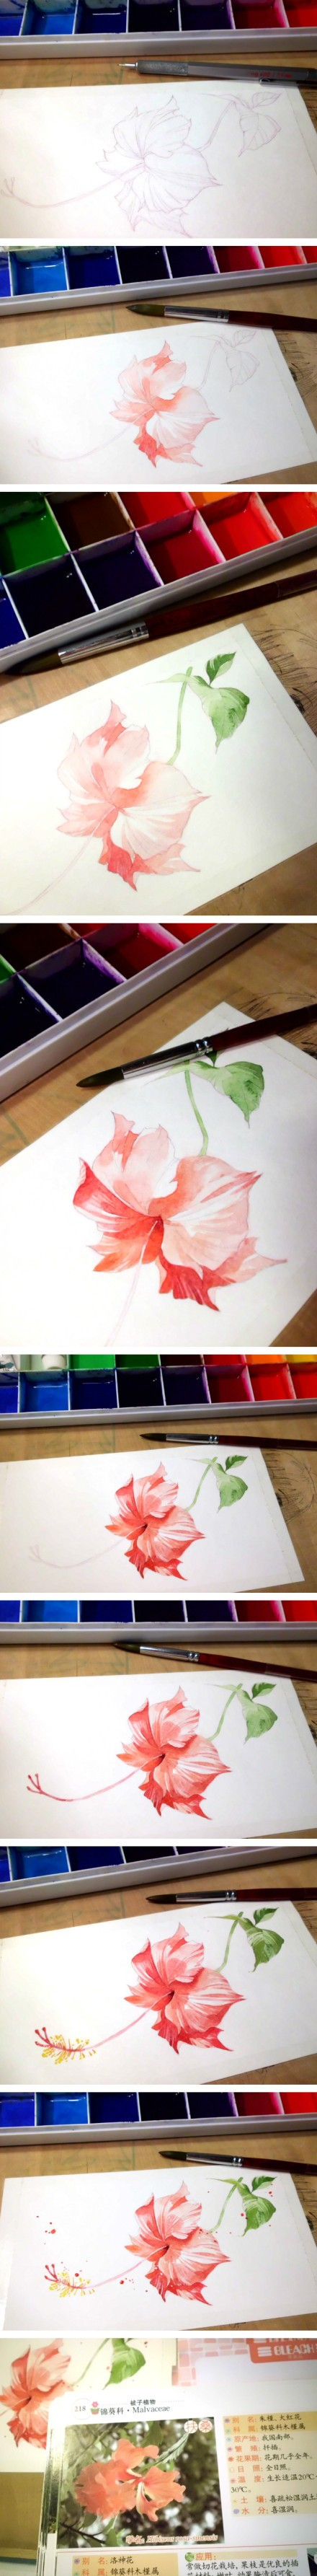 Pin by betty desimone on painting pinterest watercolor